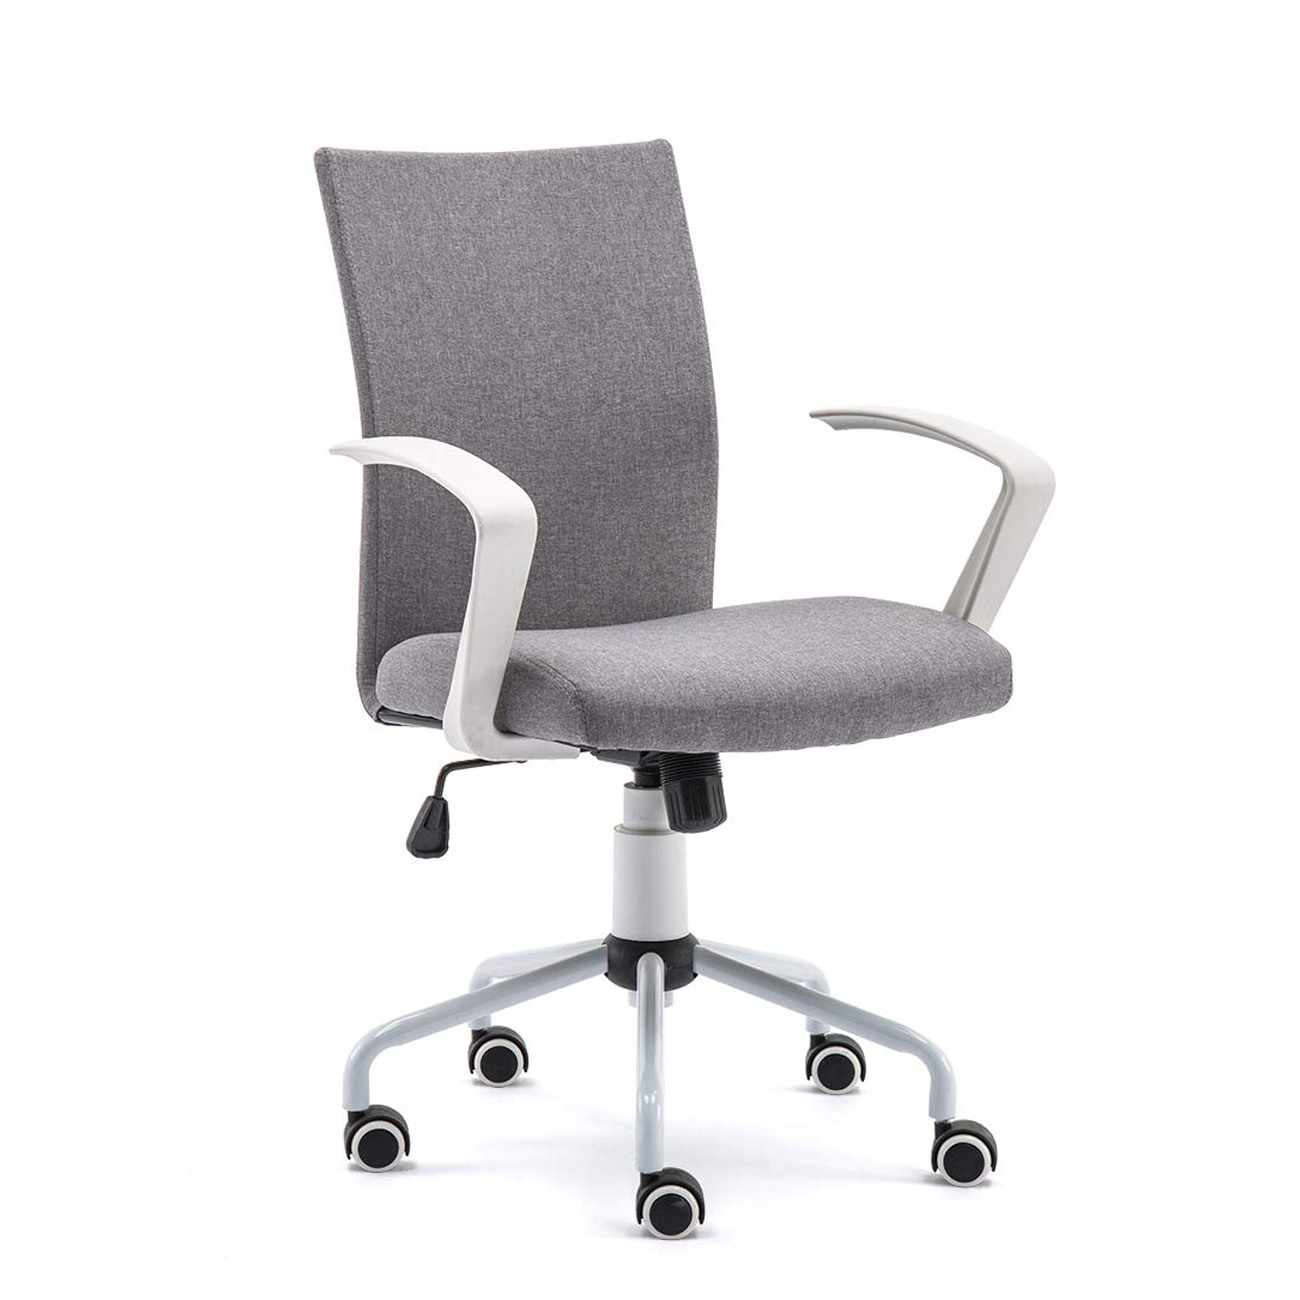 Grey Modern Office Chair Computer Desk Chair Comfort White Swivel Fabric  Home Office Task Chair with Arms and Adjustable Height